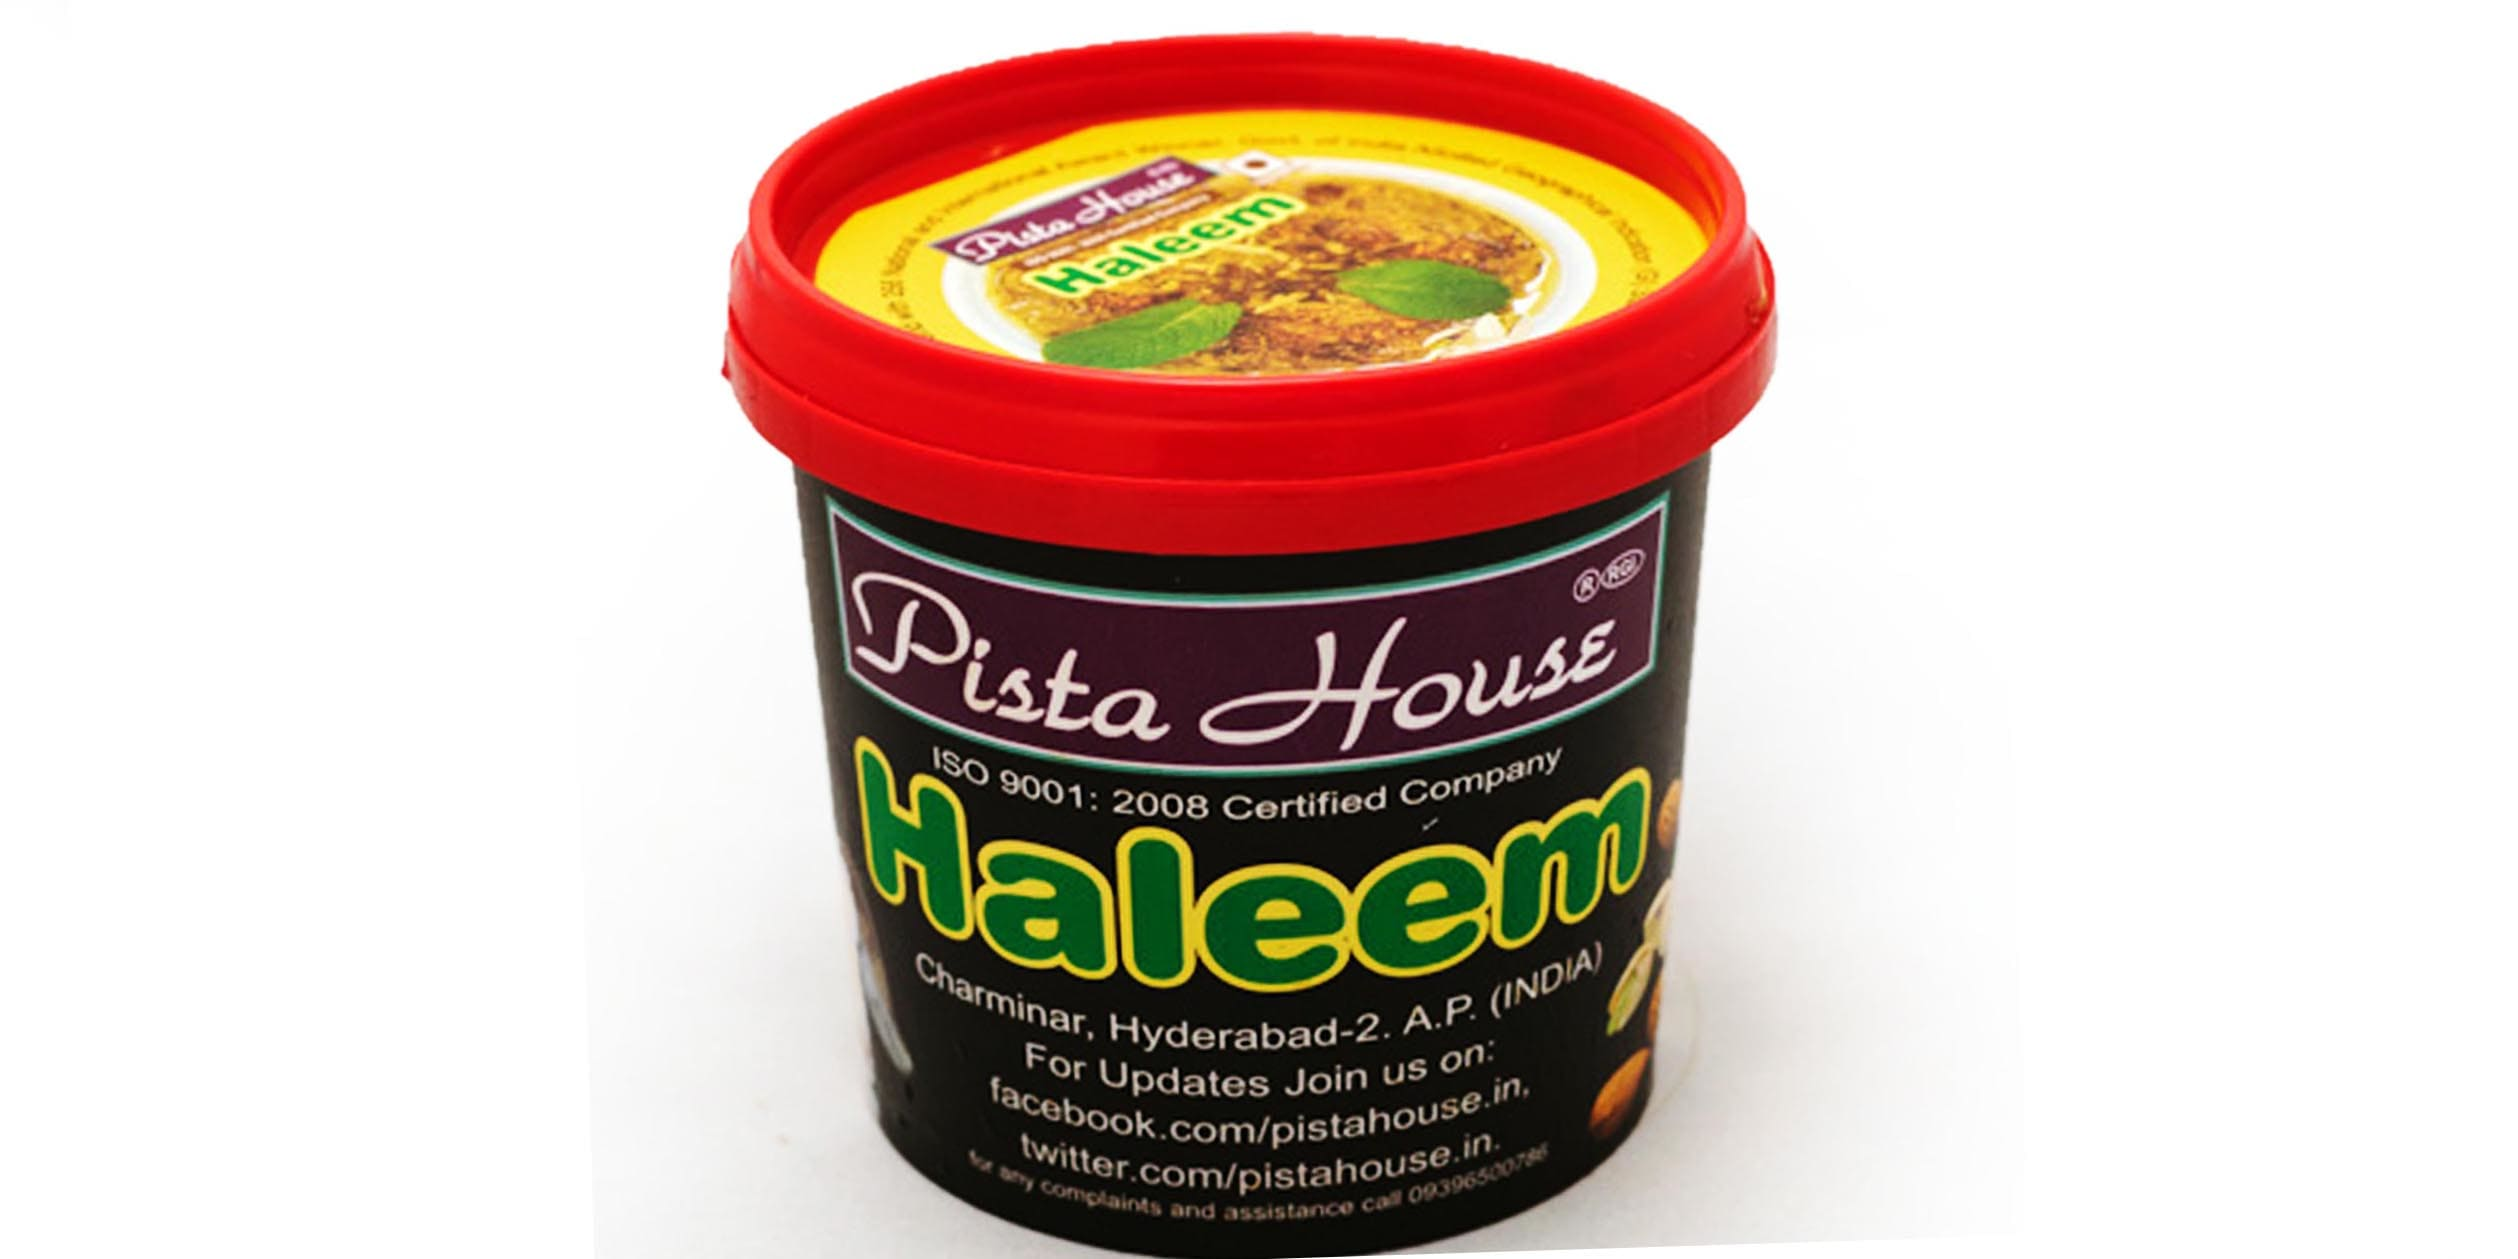 Haleem Container from Pista House. Courtesy: Swiggy